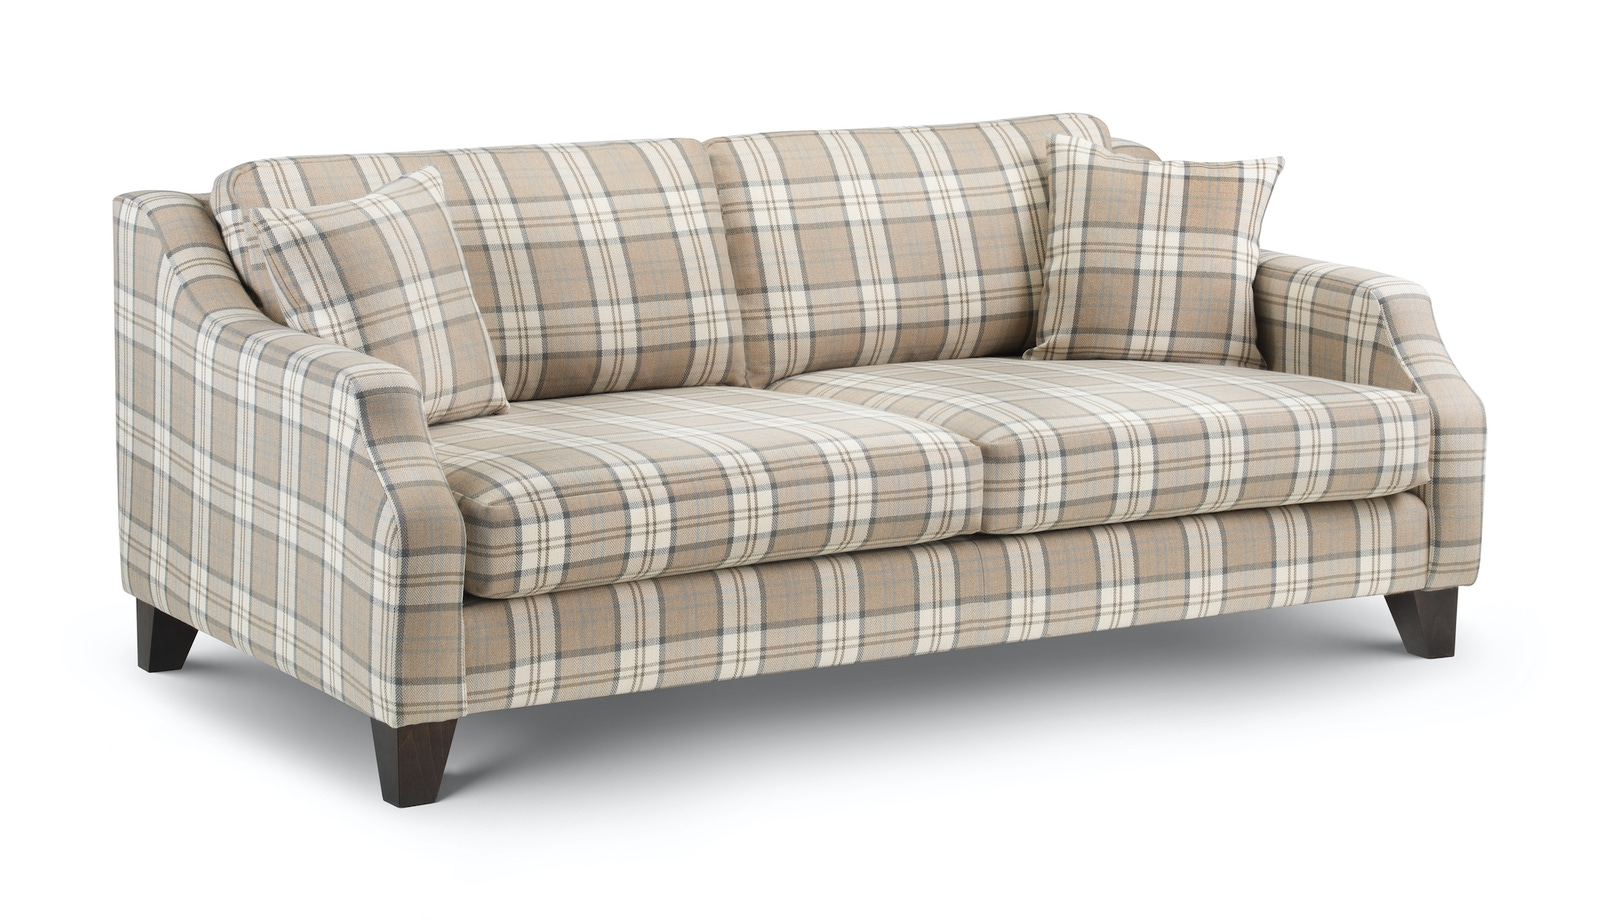 PIAZZA SOFA CUSHION MAIN